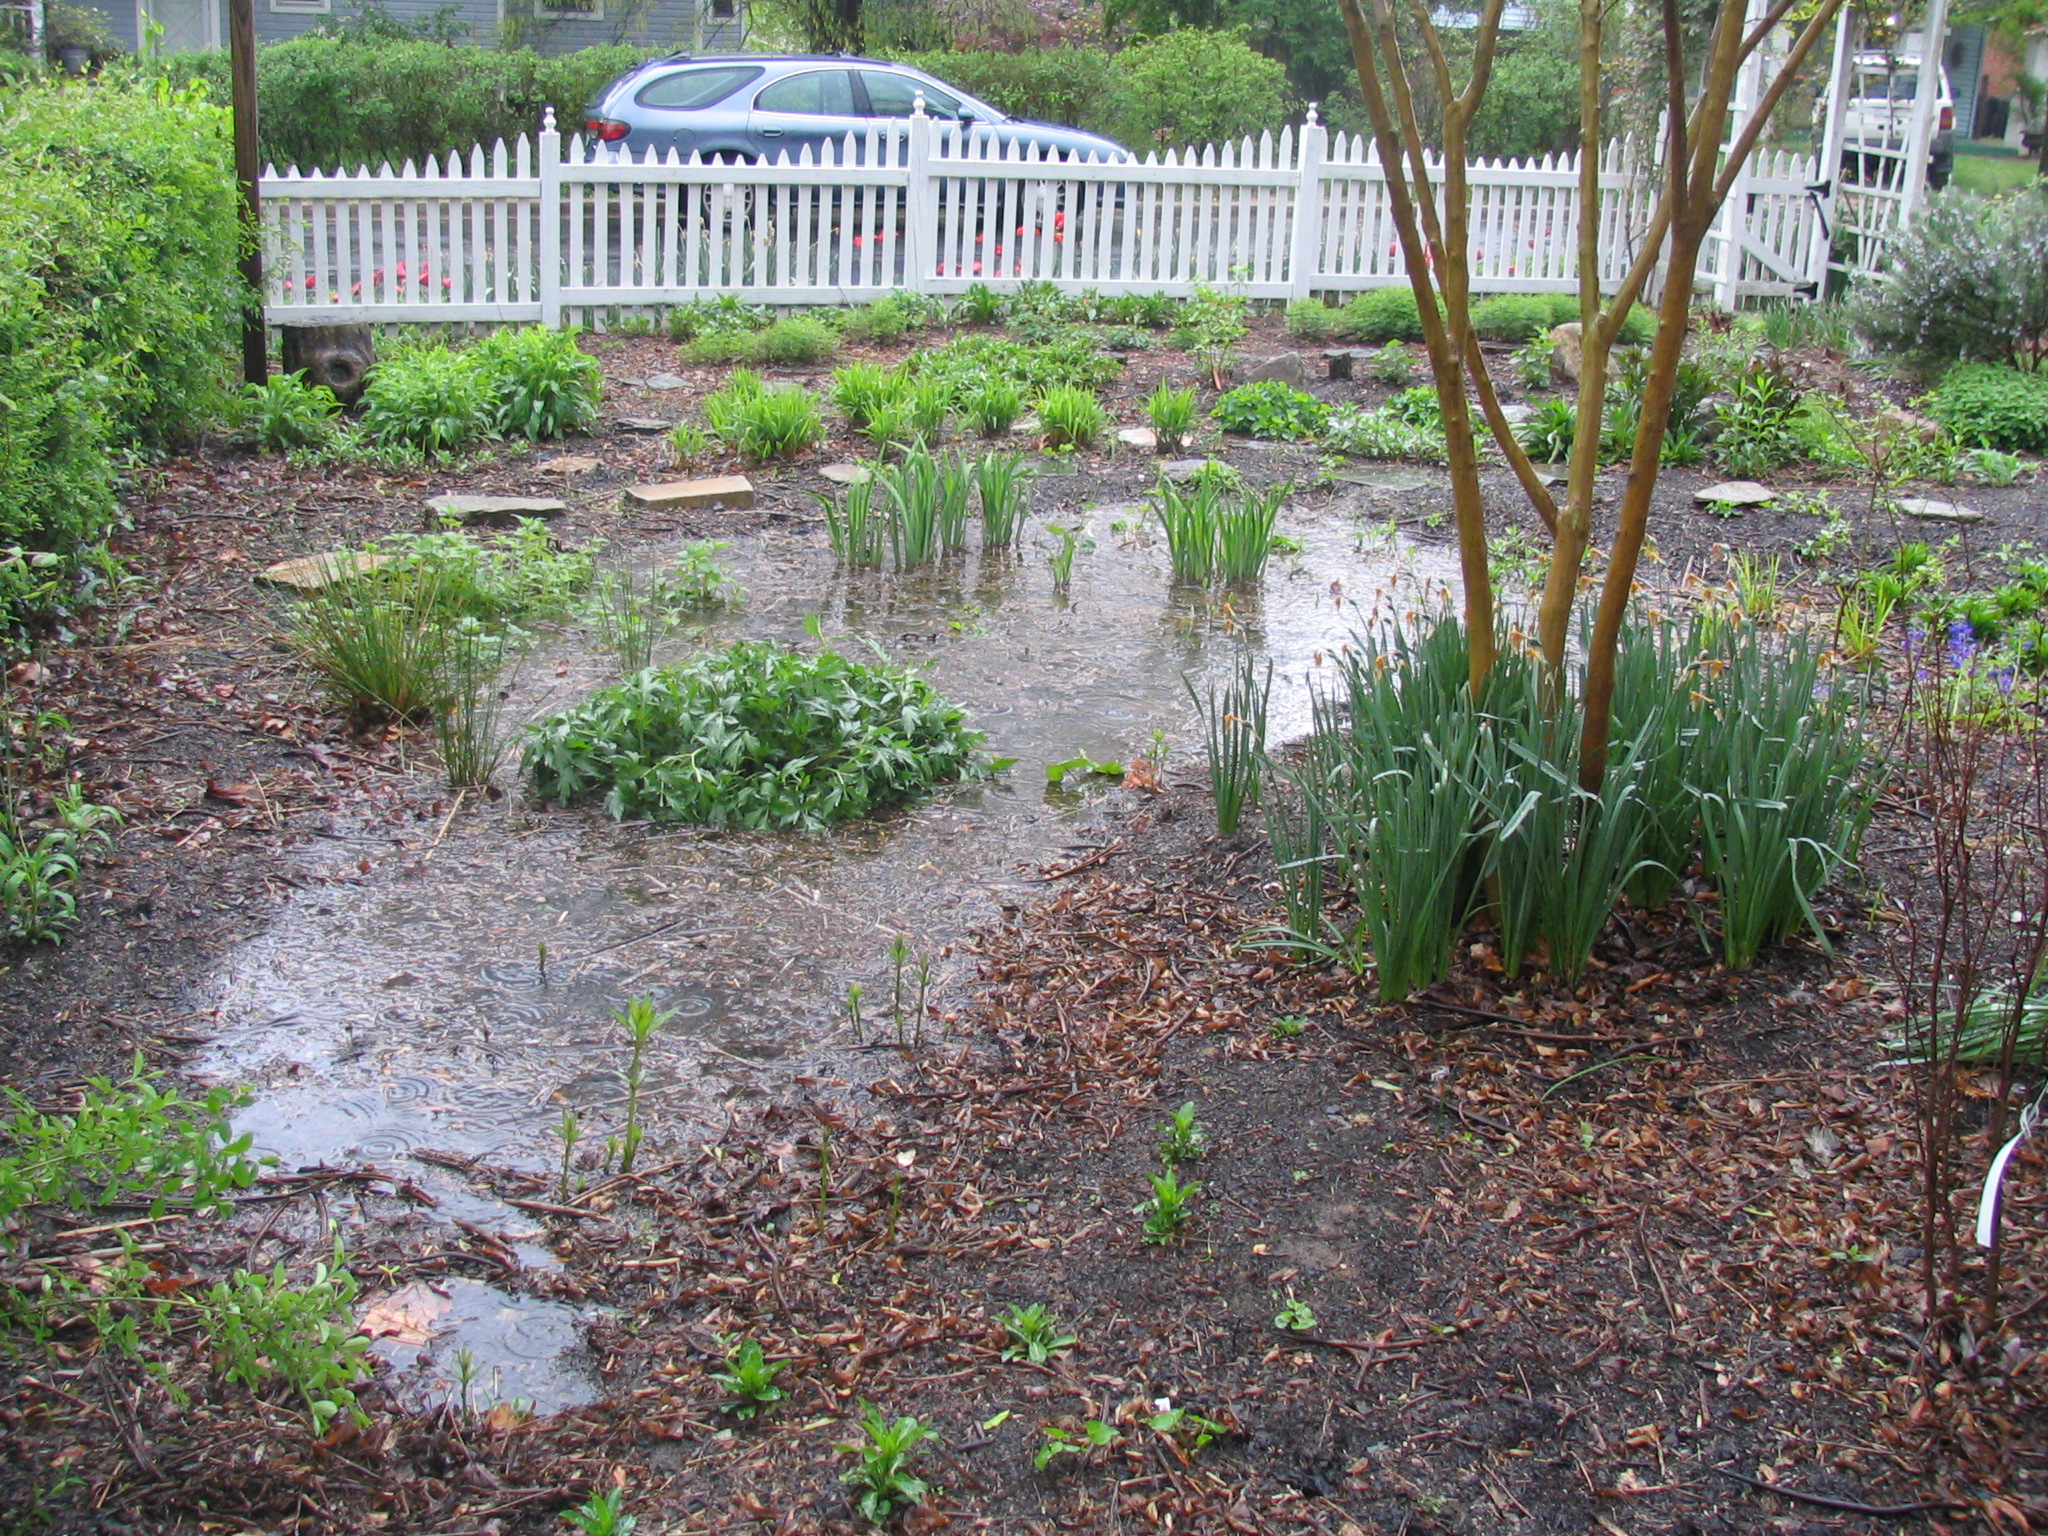 Native plant rain garden holding water after a rain storm